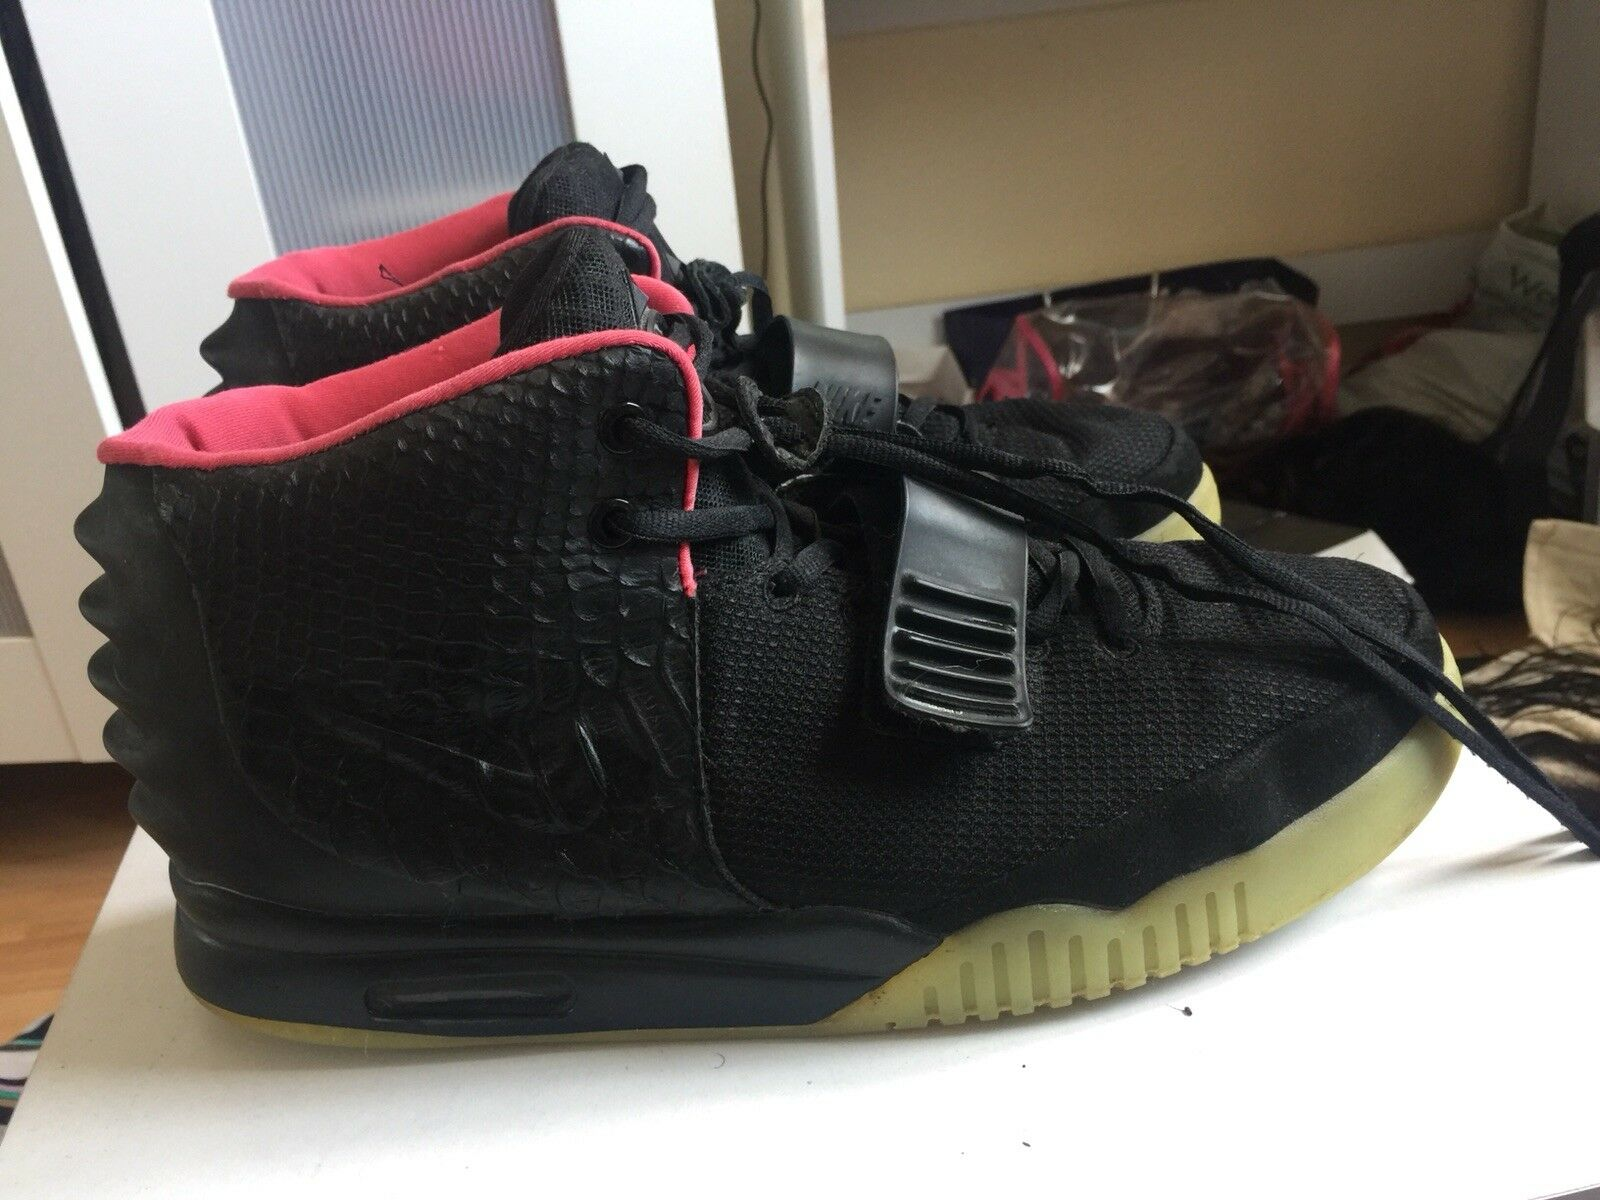 Nike Air Yeezy 2 Black Solar Red, Nike x Kanye West